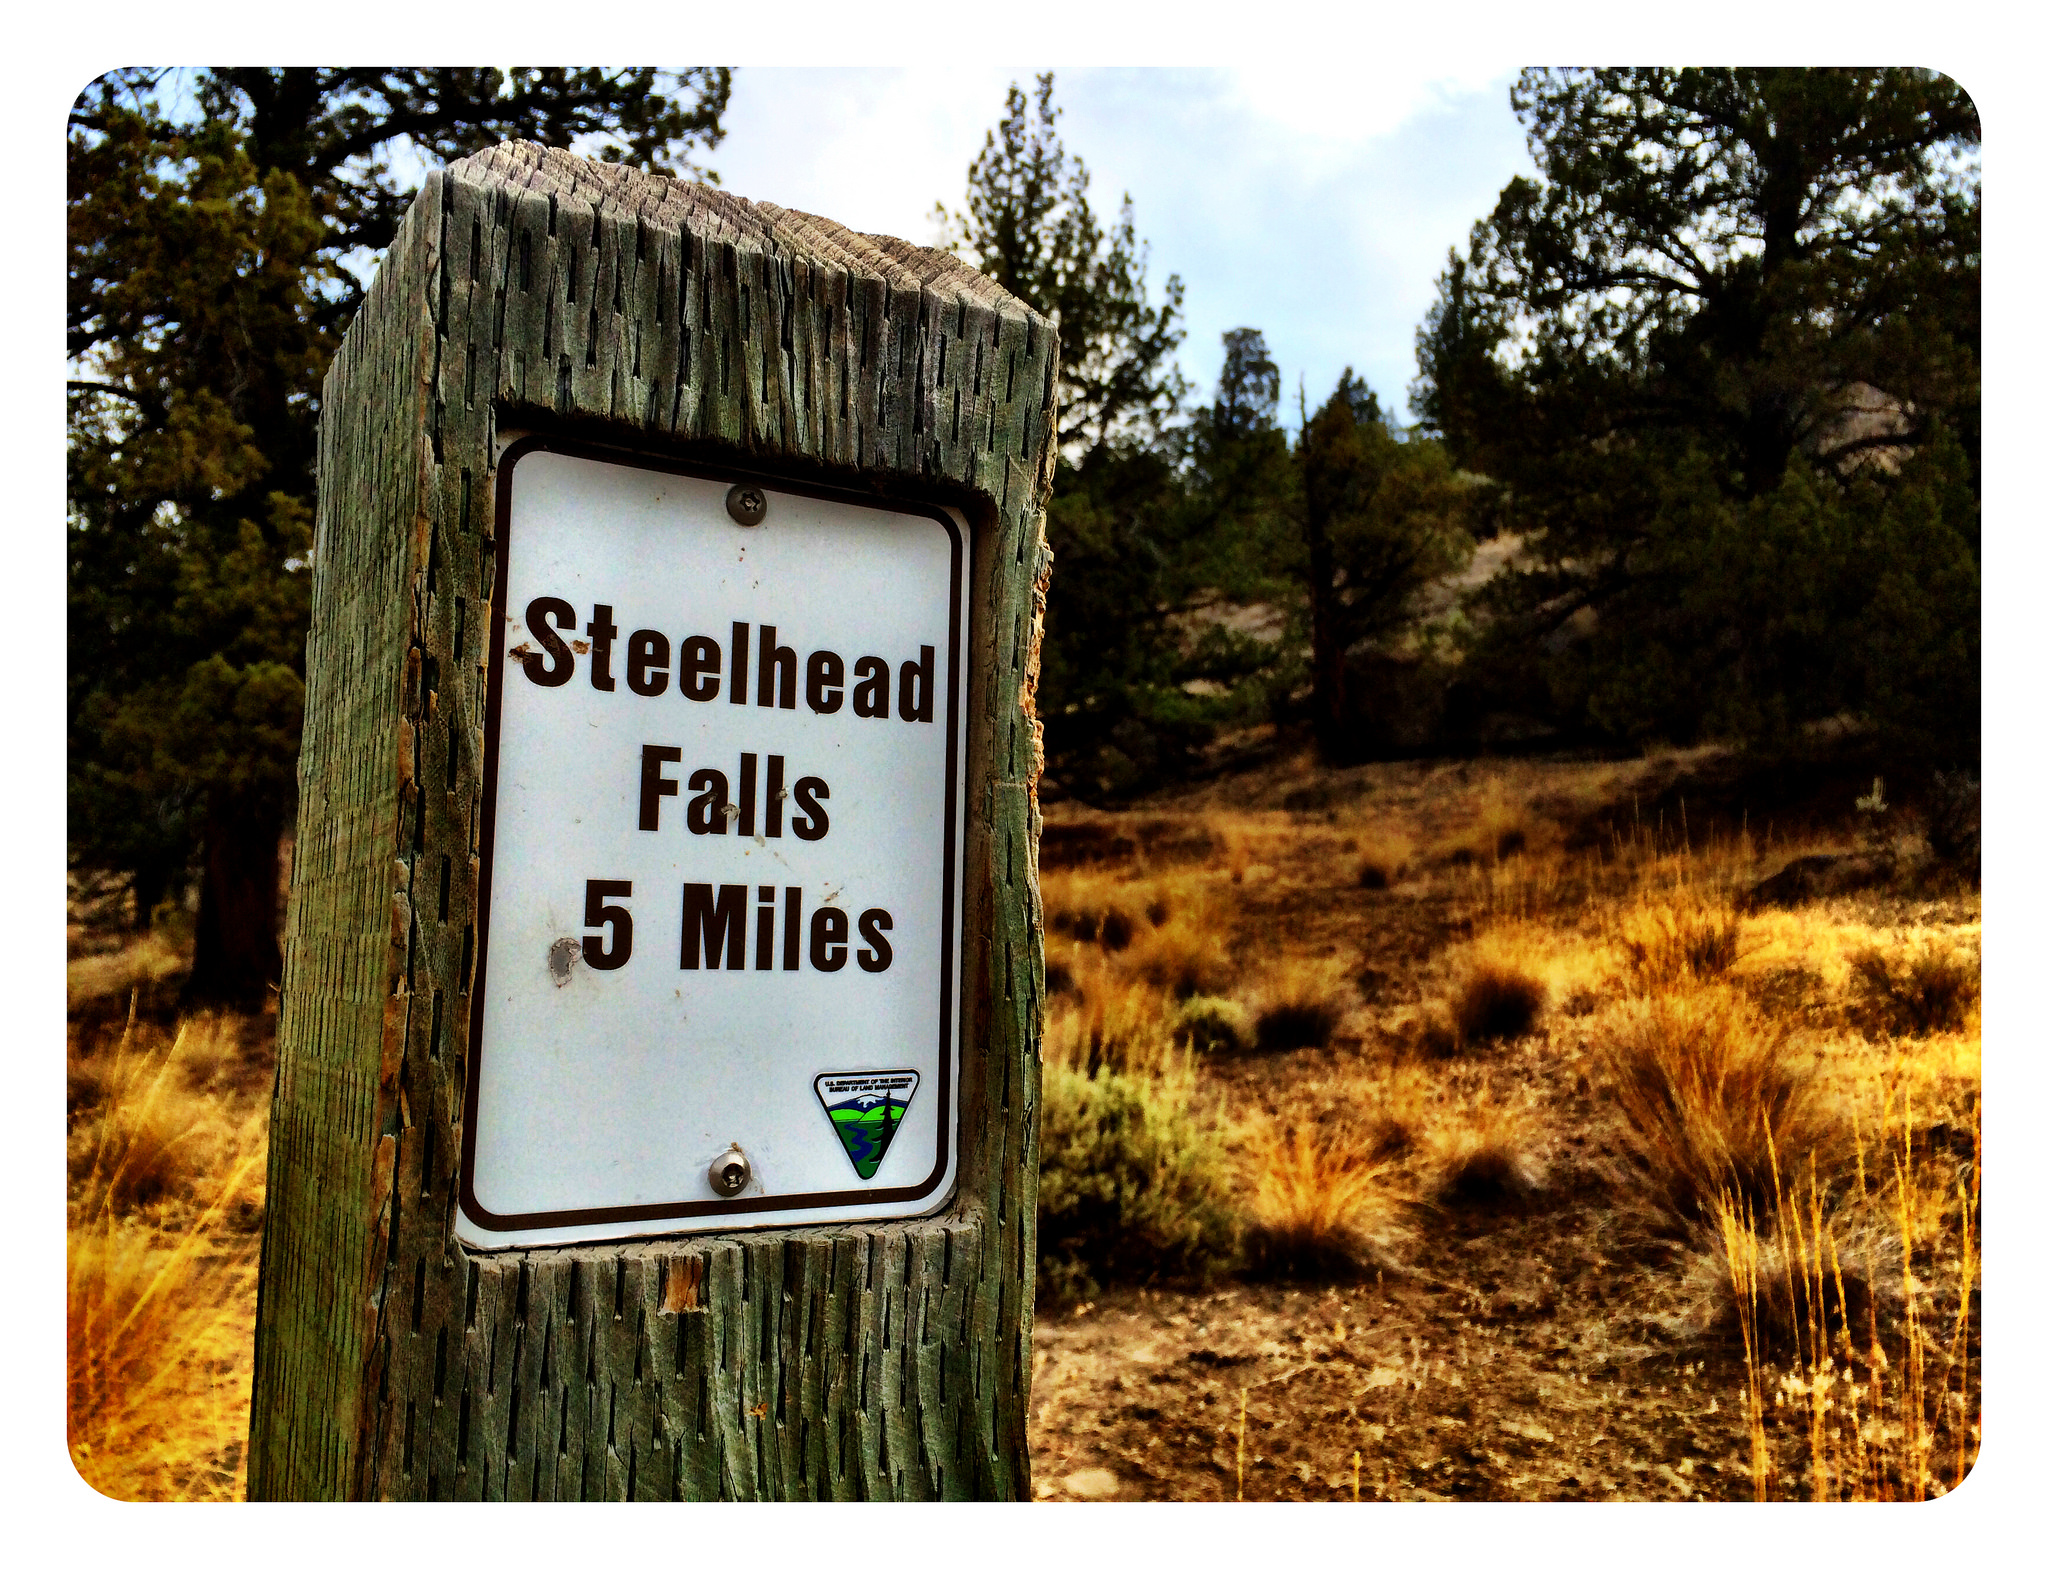 Steelhead Falls sign (Image courtesy of BLM / Flickr)